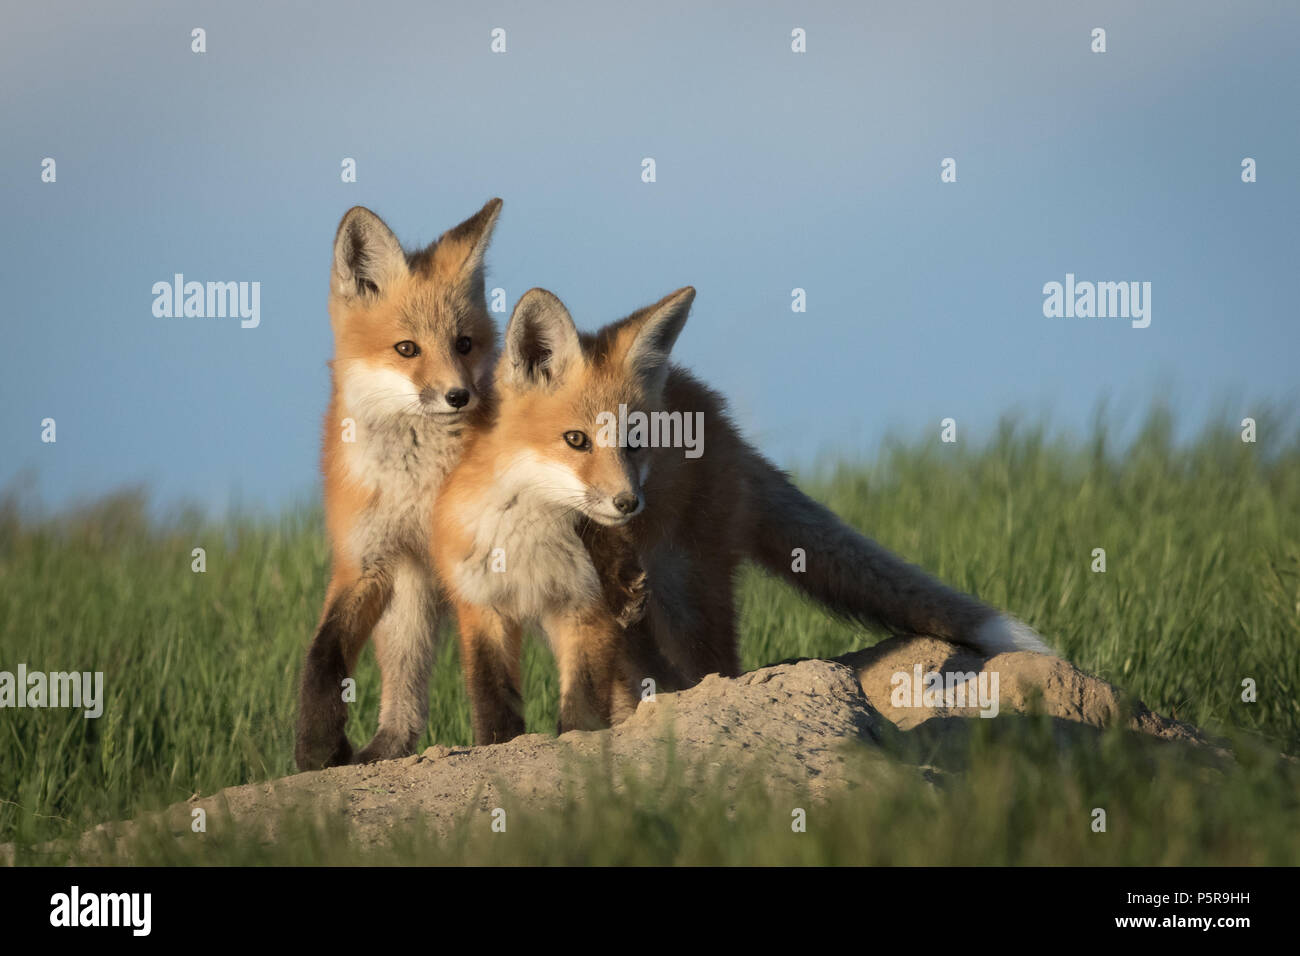 Two Red Fox kits showing some brotherly love. - Stock Image